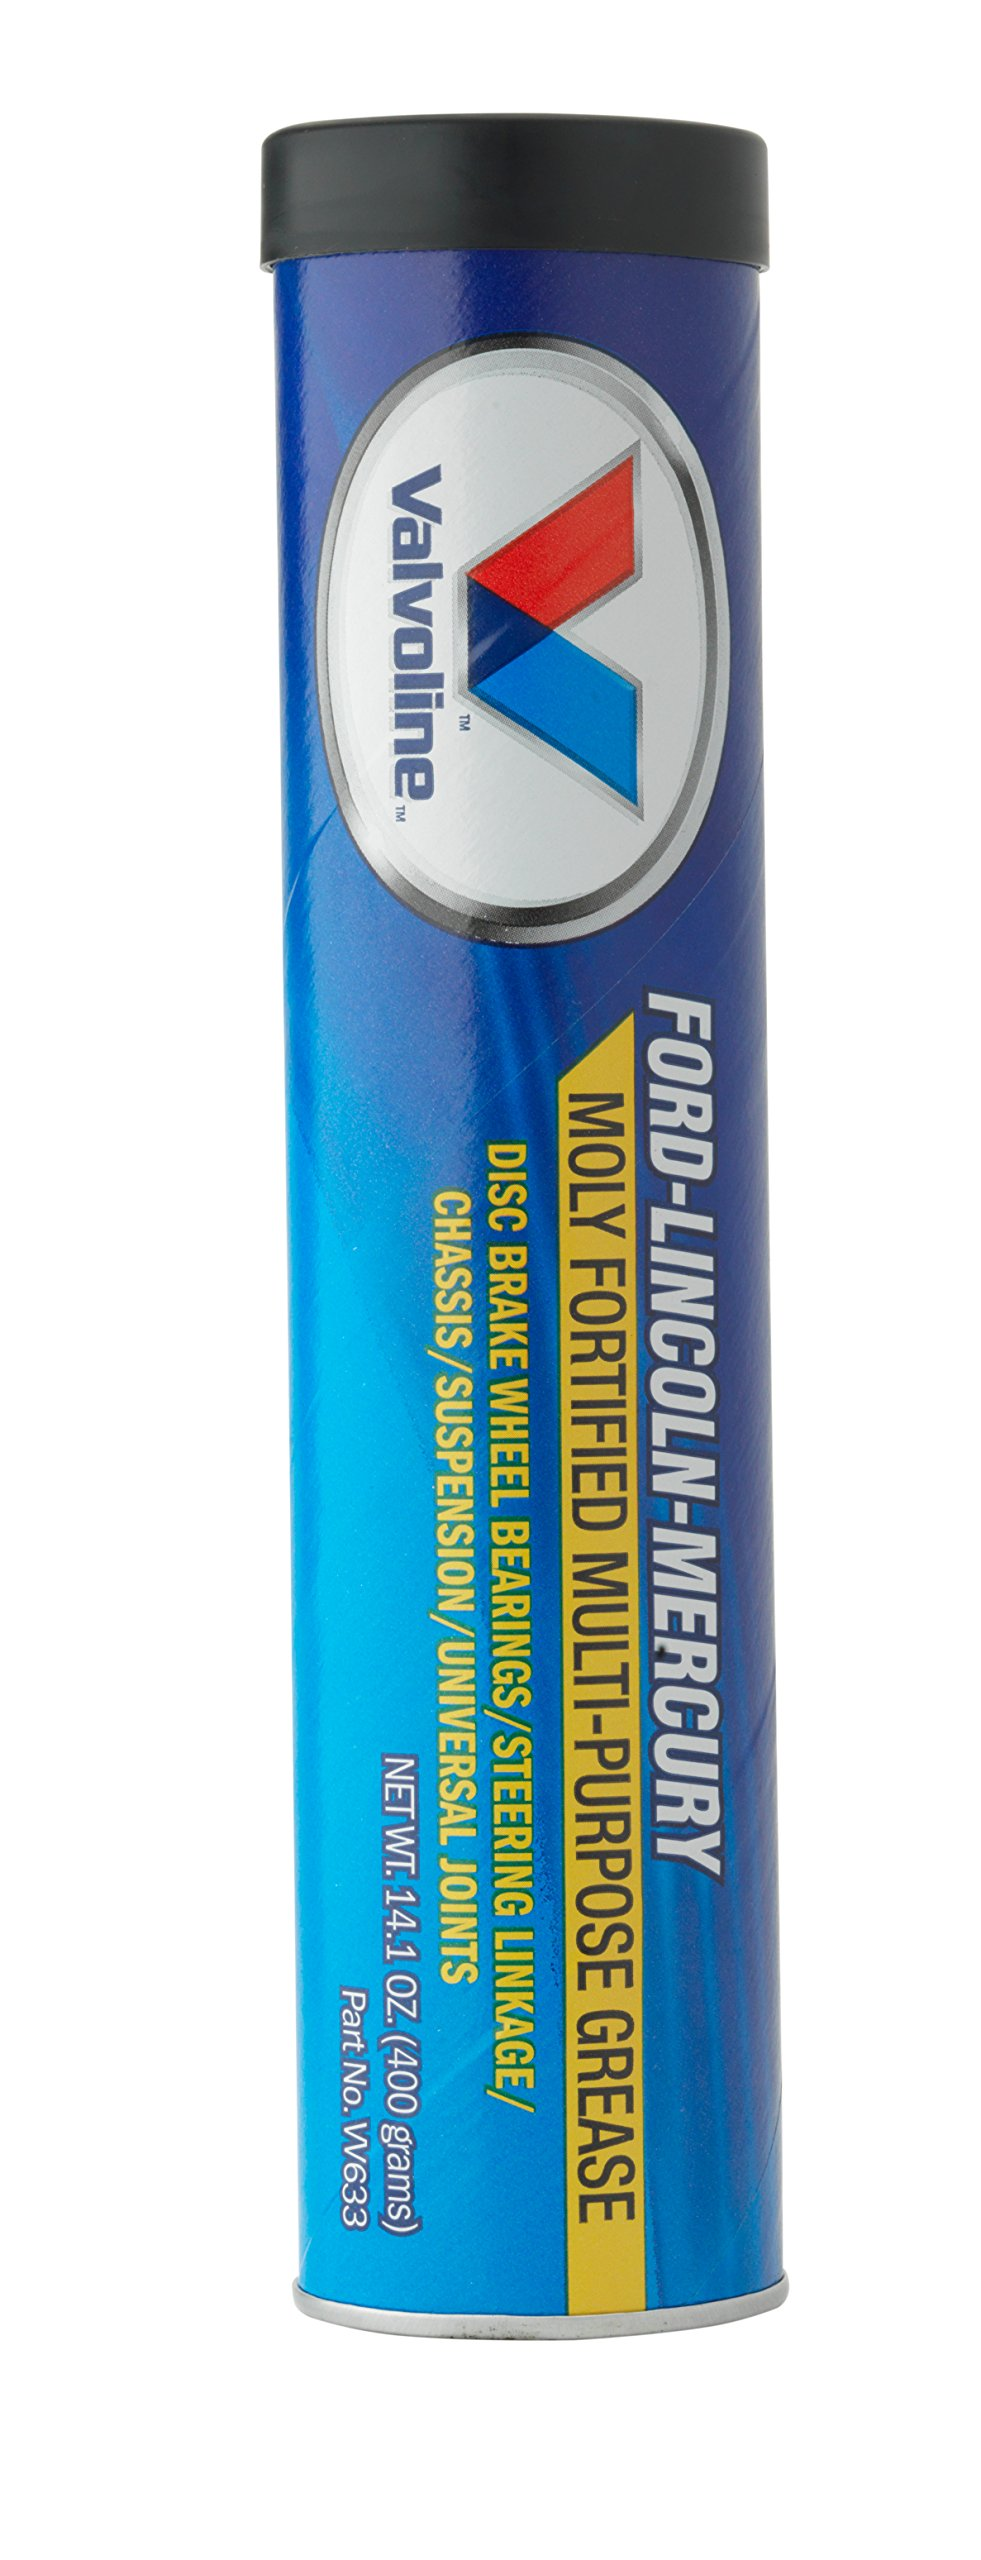 Valvoline VV633 Multi-Purpose Grease (Moly-Fortified Ford - 14.1oz), 50 Pack by Valvoline